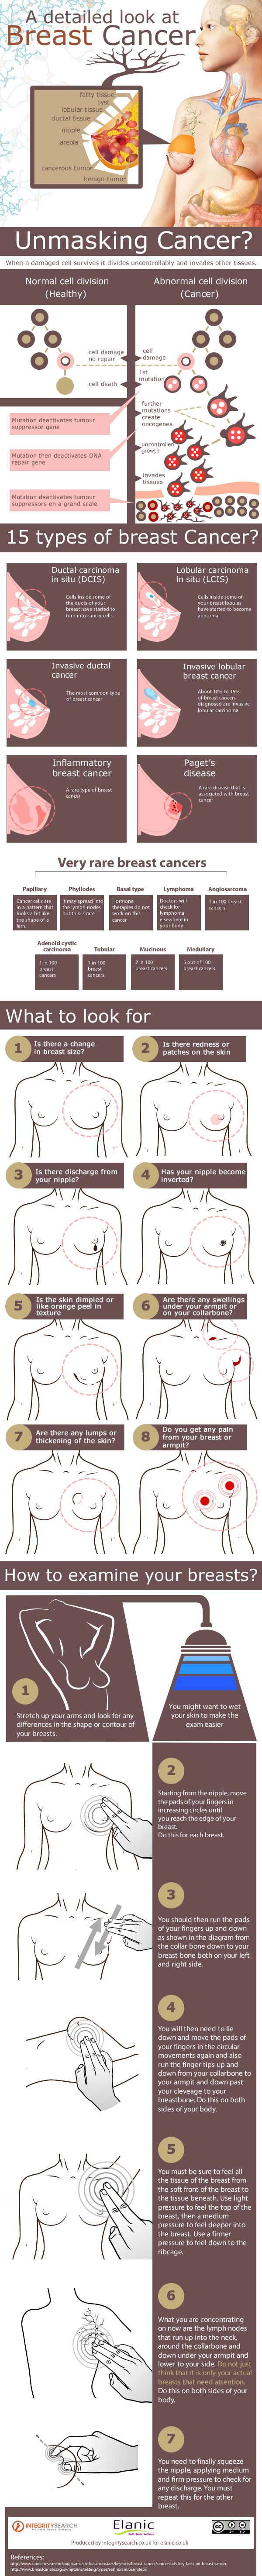 Breast Cancer Awareness Infographic http://www.elanic.co.uk/latest-news/breast-cancer-awareness-infographic/